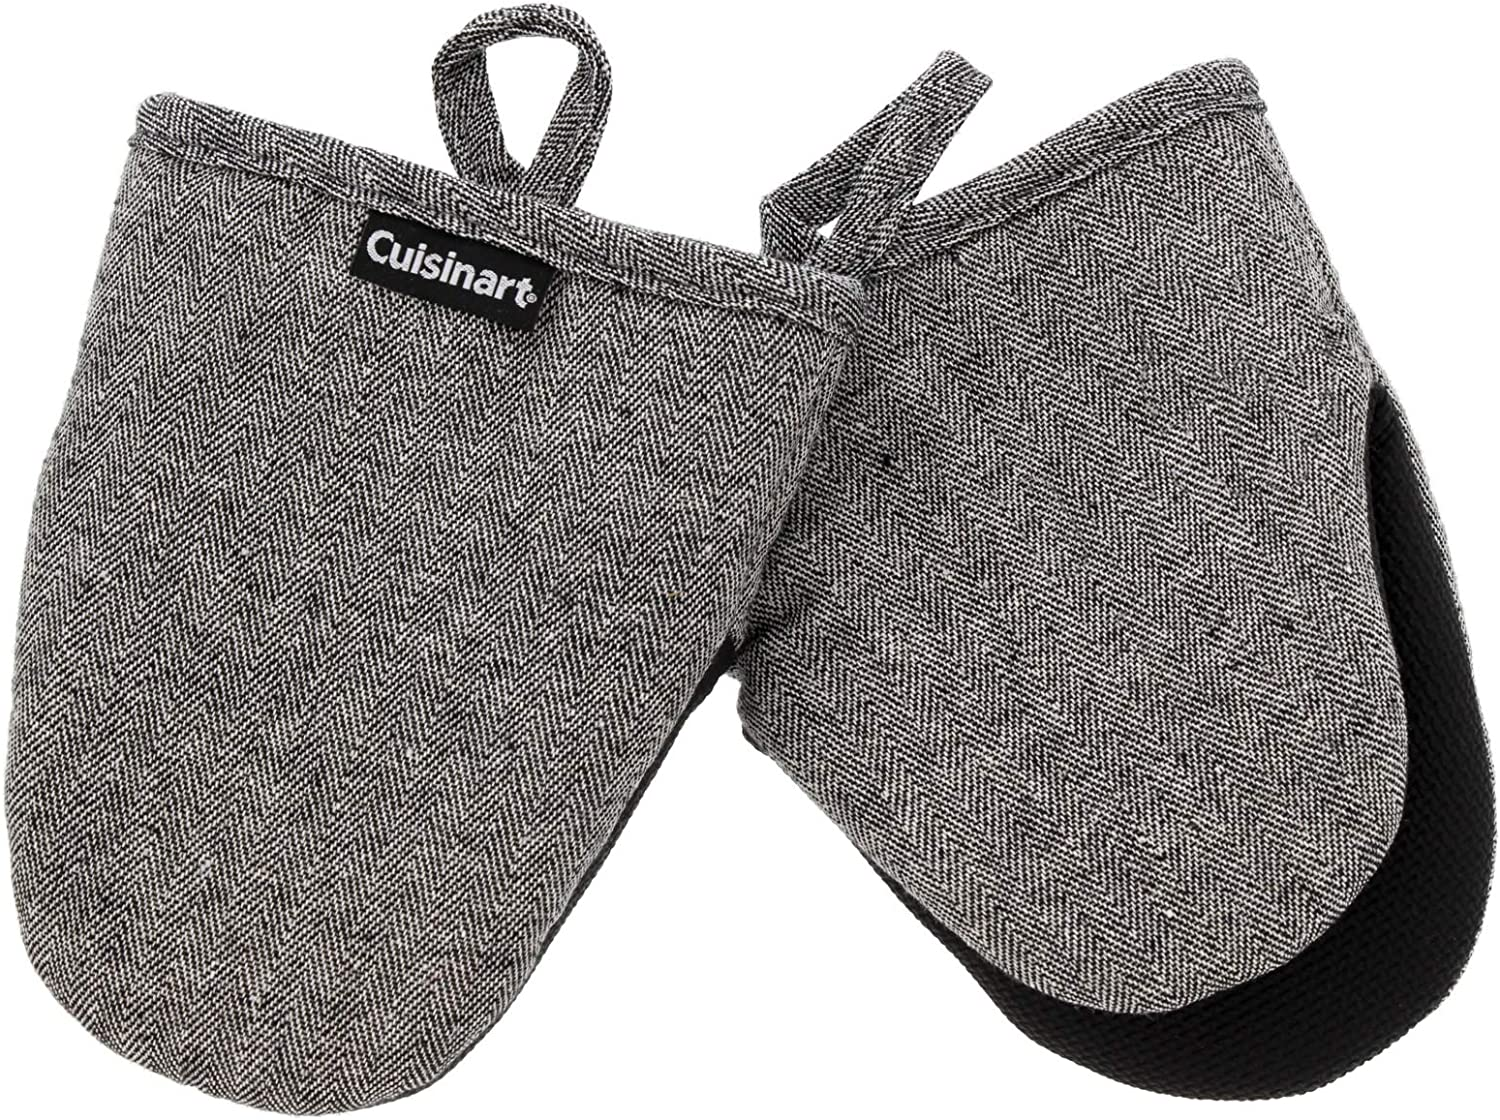 Cuisinart Oven Mitts, 2pk - Heat Resistant Oven Gloves to Protect Hands and Surfaces with Non-Slip Grip and Hanging Loop - Ideal Set for Handling Hot Cookware, Bakeware – Chevron, Black